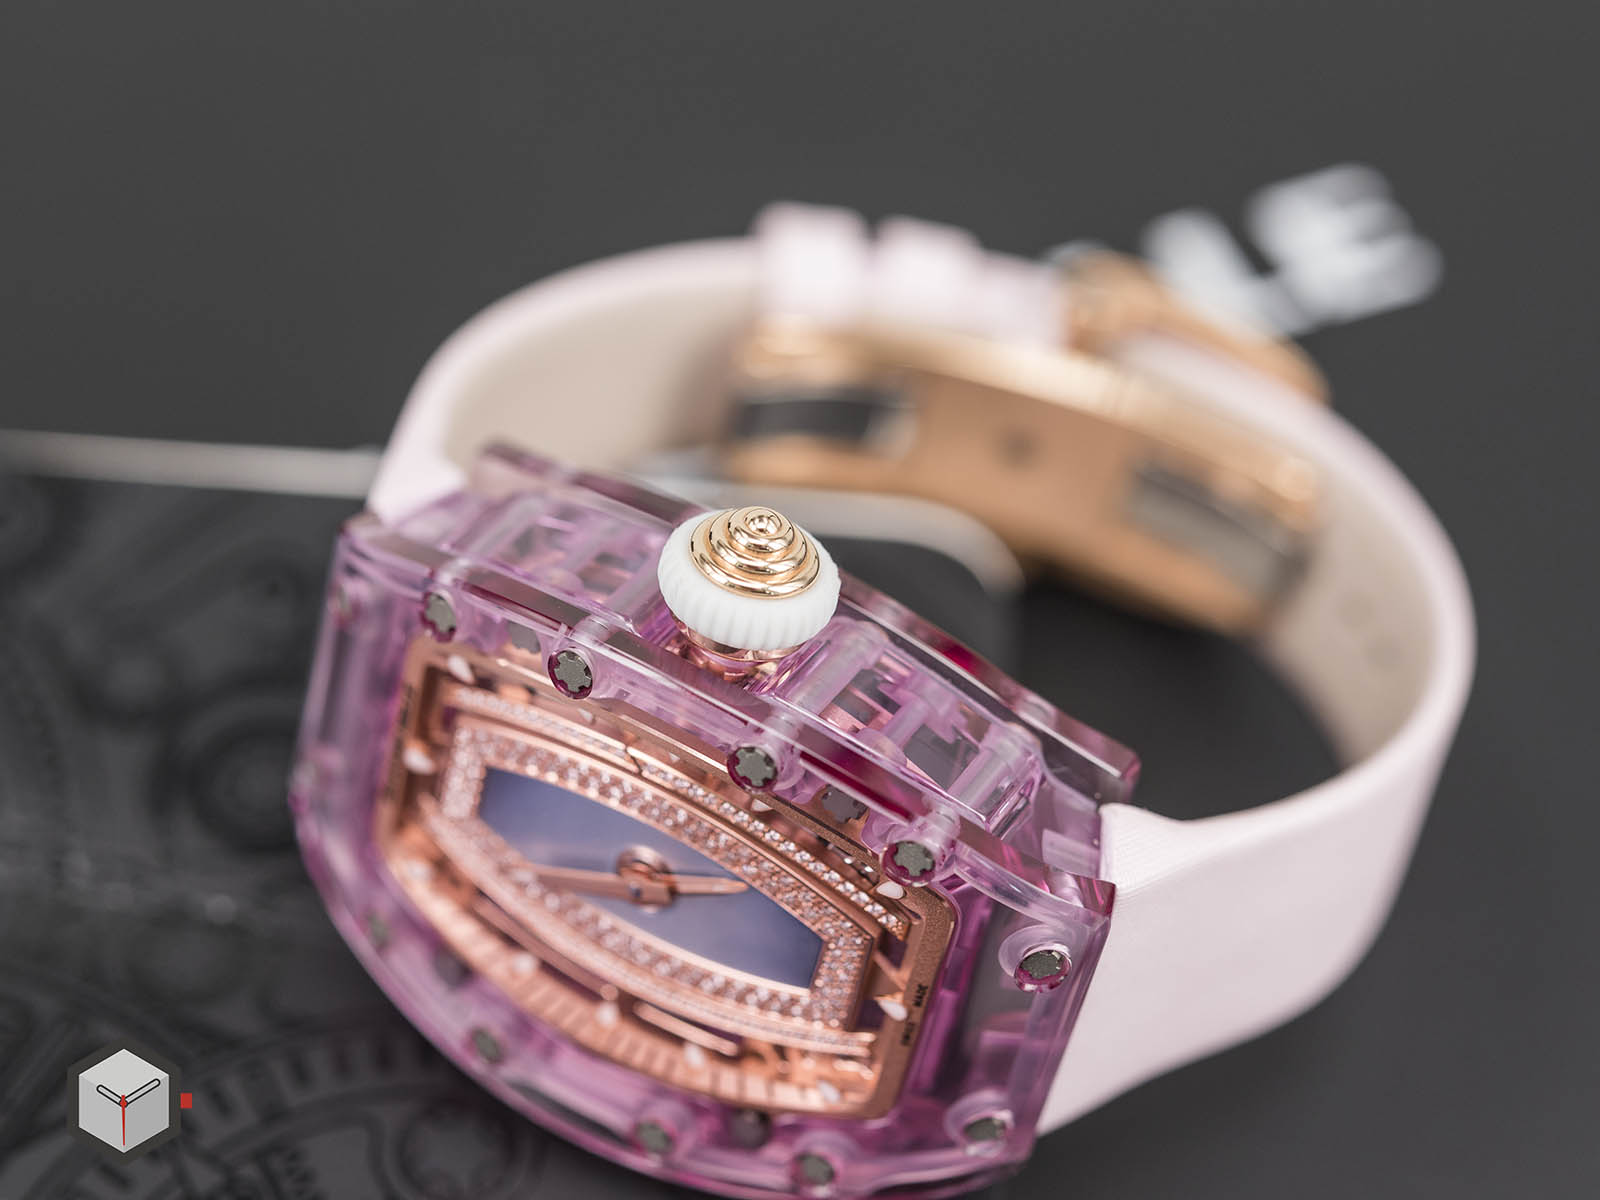 rm-07-02-richard-mille-automatic-pink-lady-sapphire-6.jpg